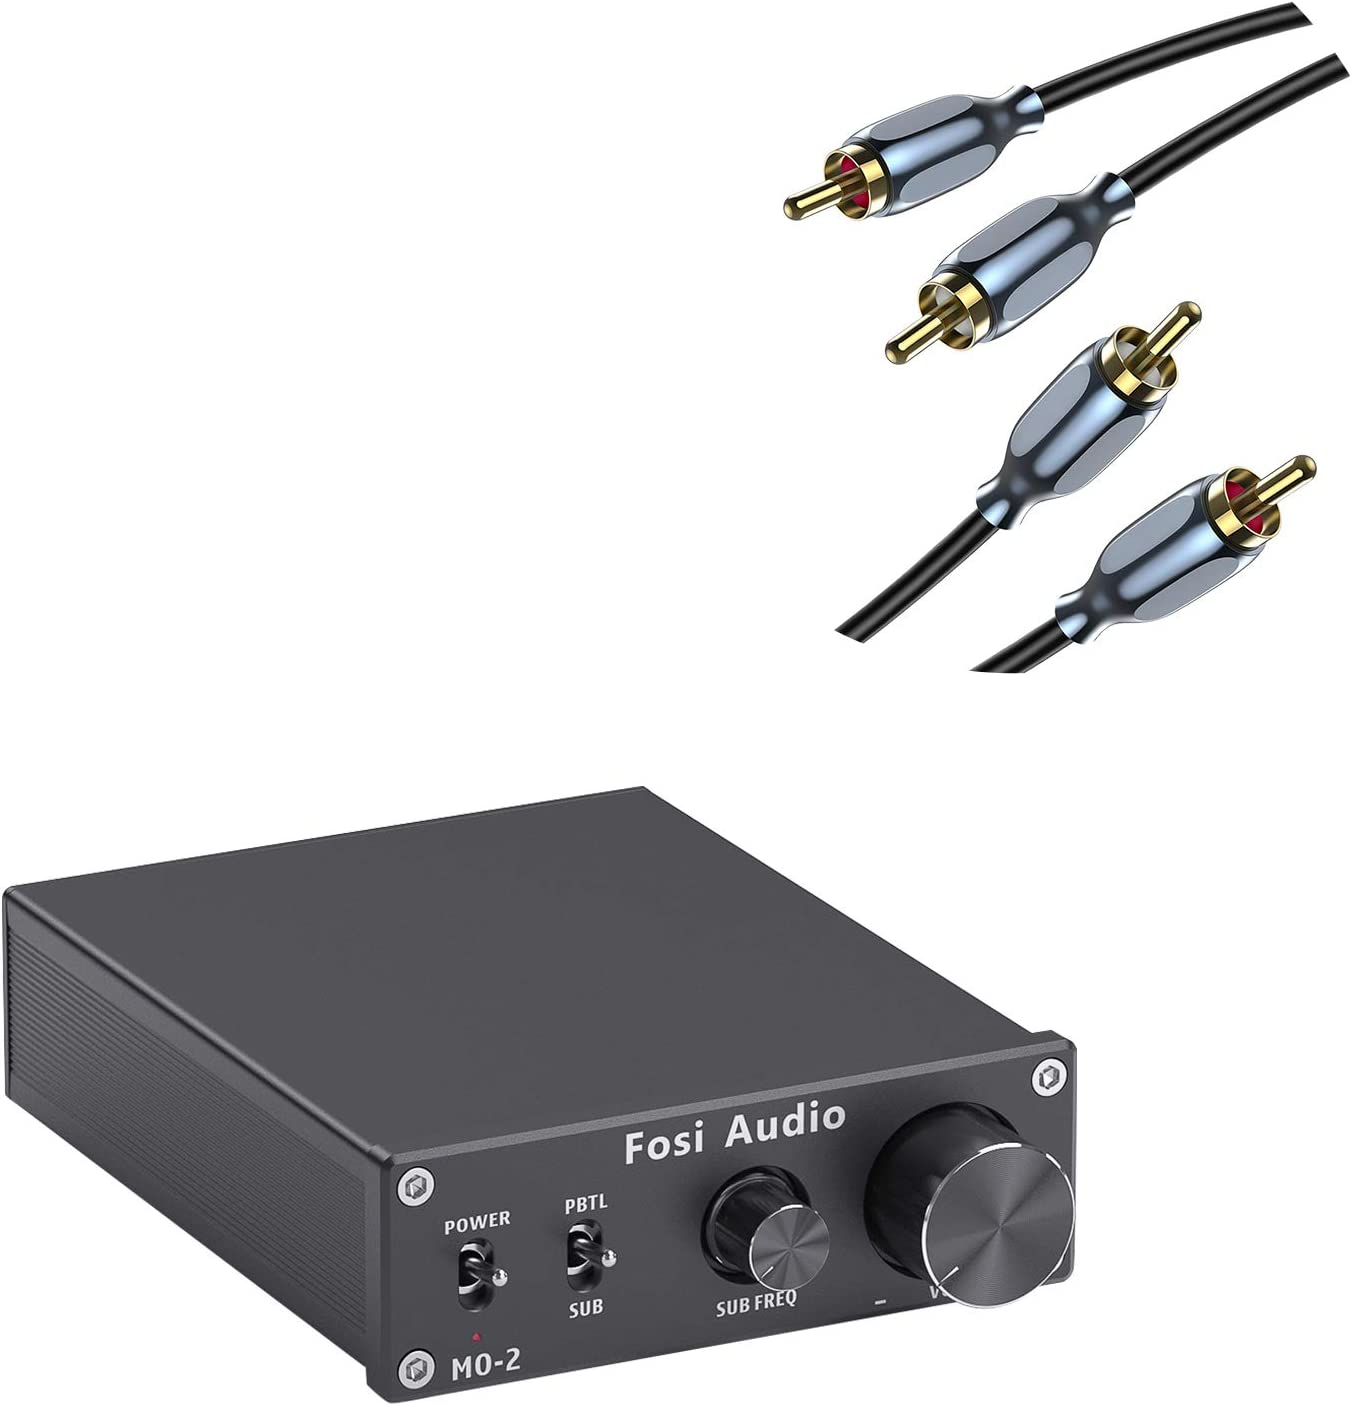 Fosi Audio M02 Subwoofer Amplifier Mono Channel Home Theater Power Amp 100W and [5.9ft/1.8m] RCA-RCA HiFi Audio Cable